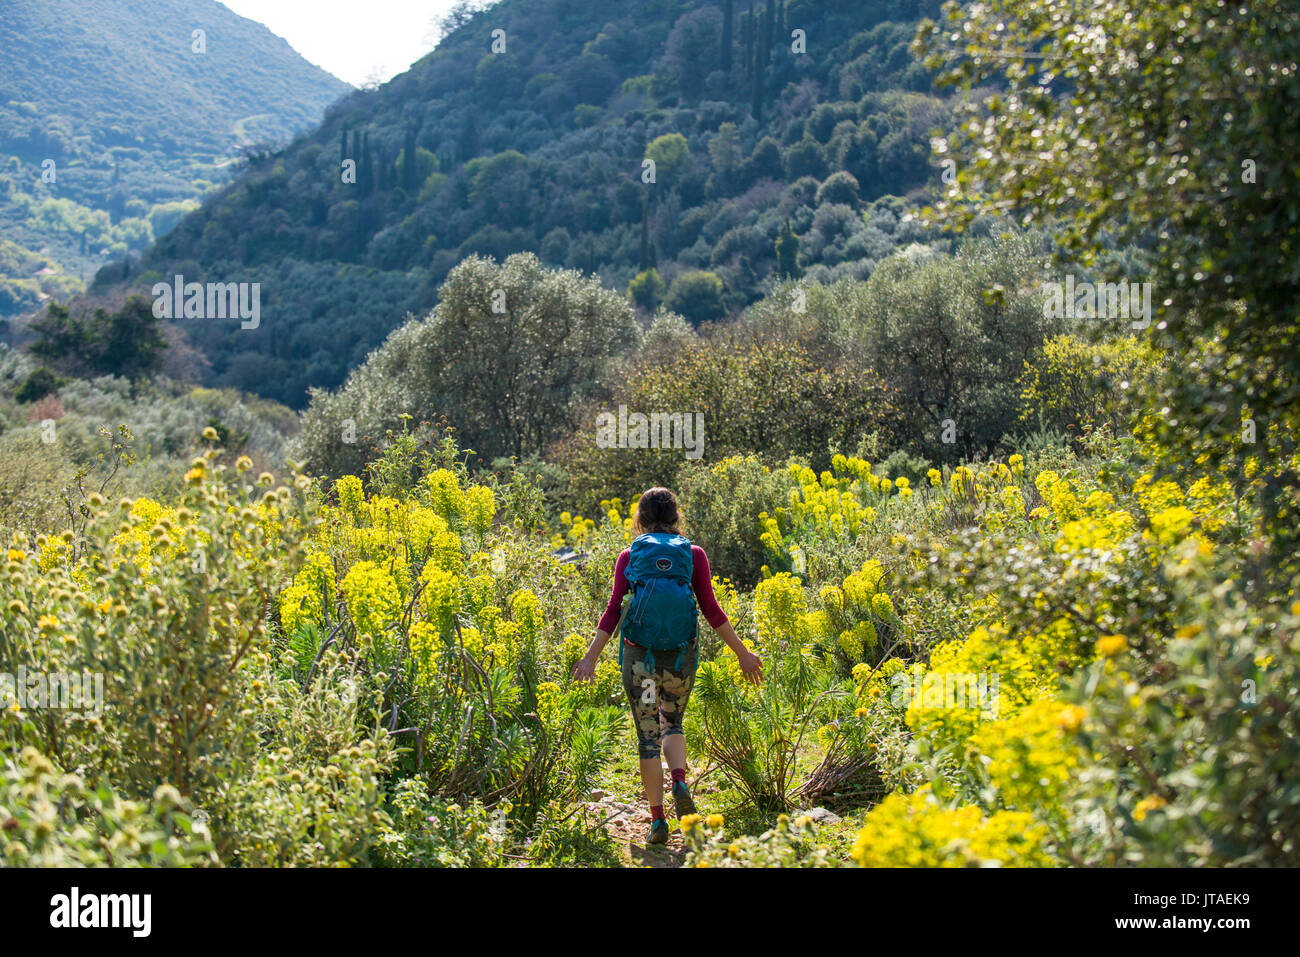 A woman hiking a trail full of abundant wild flowers on the Mani Peninsula in the Peloponnese, Greece, Europe - Stock Image